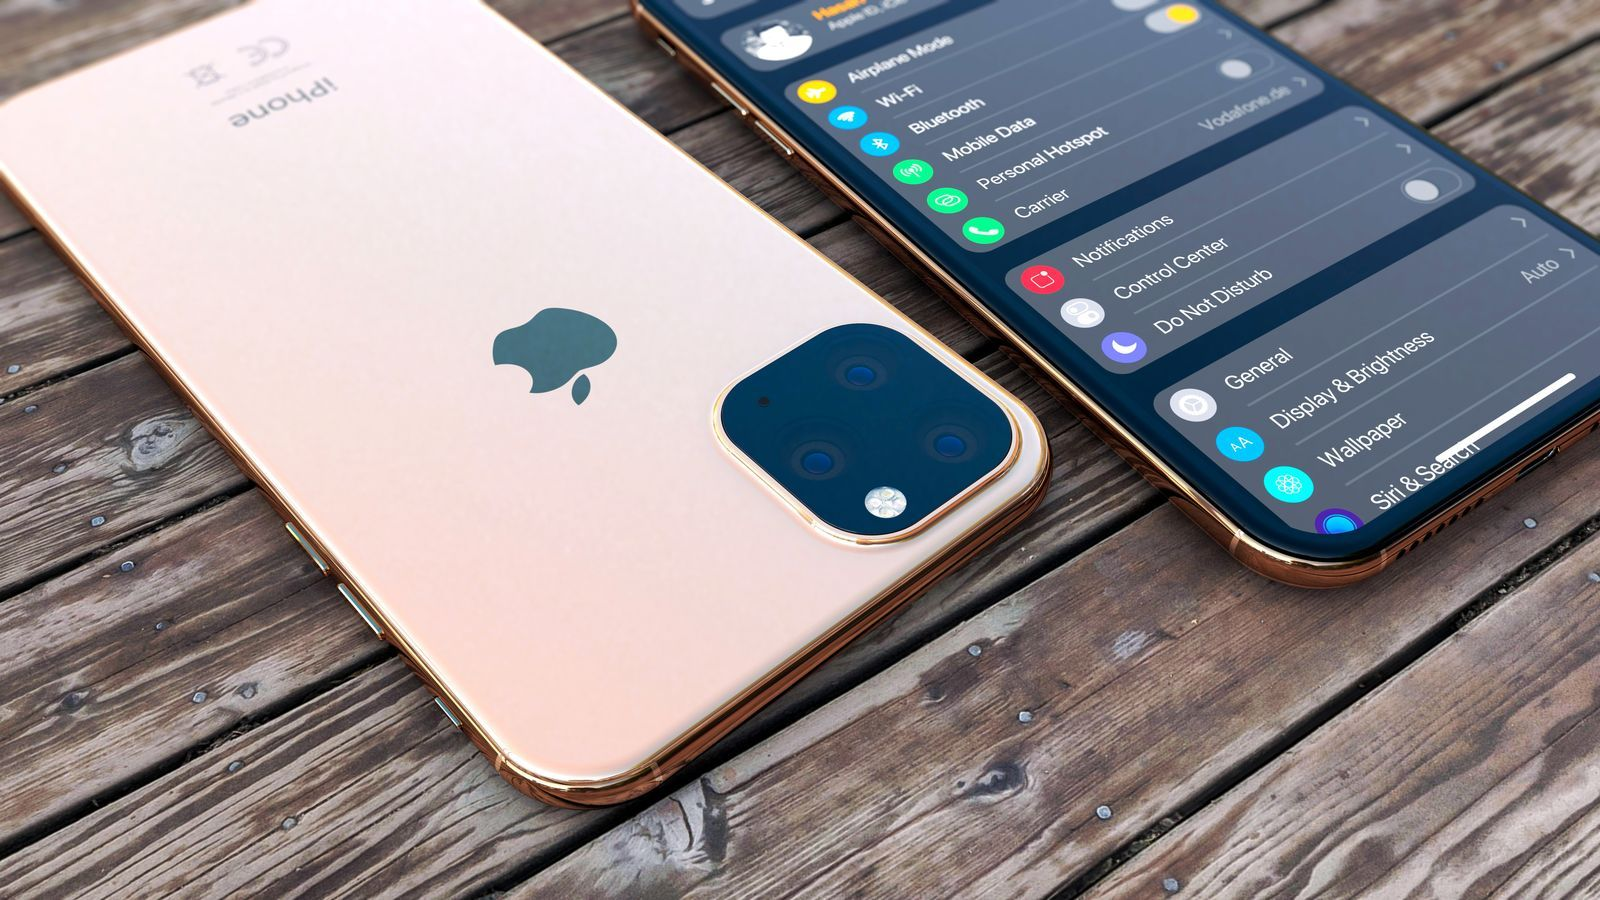 Apple reportedly canceled quantum dot camera technology for the iPhone 11